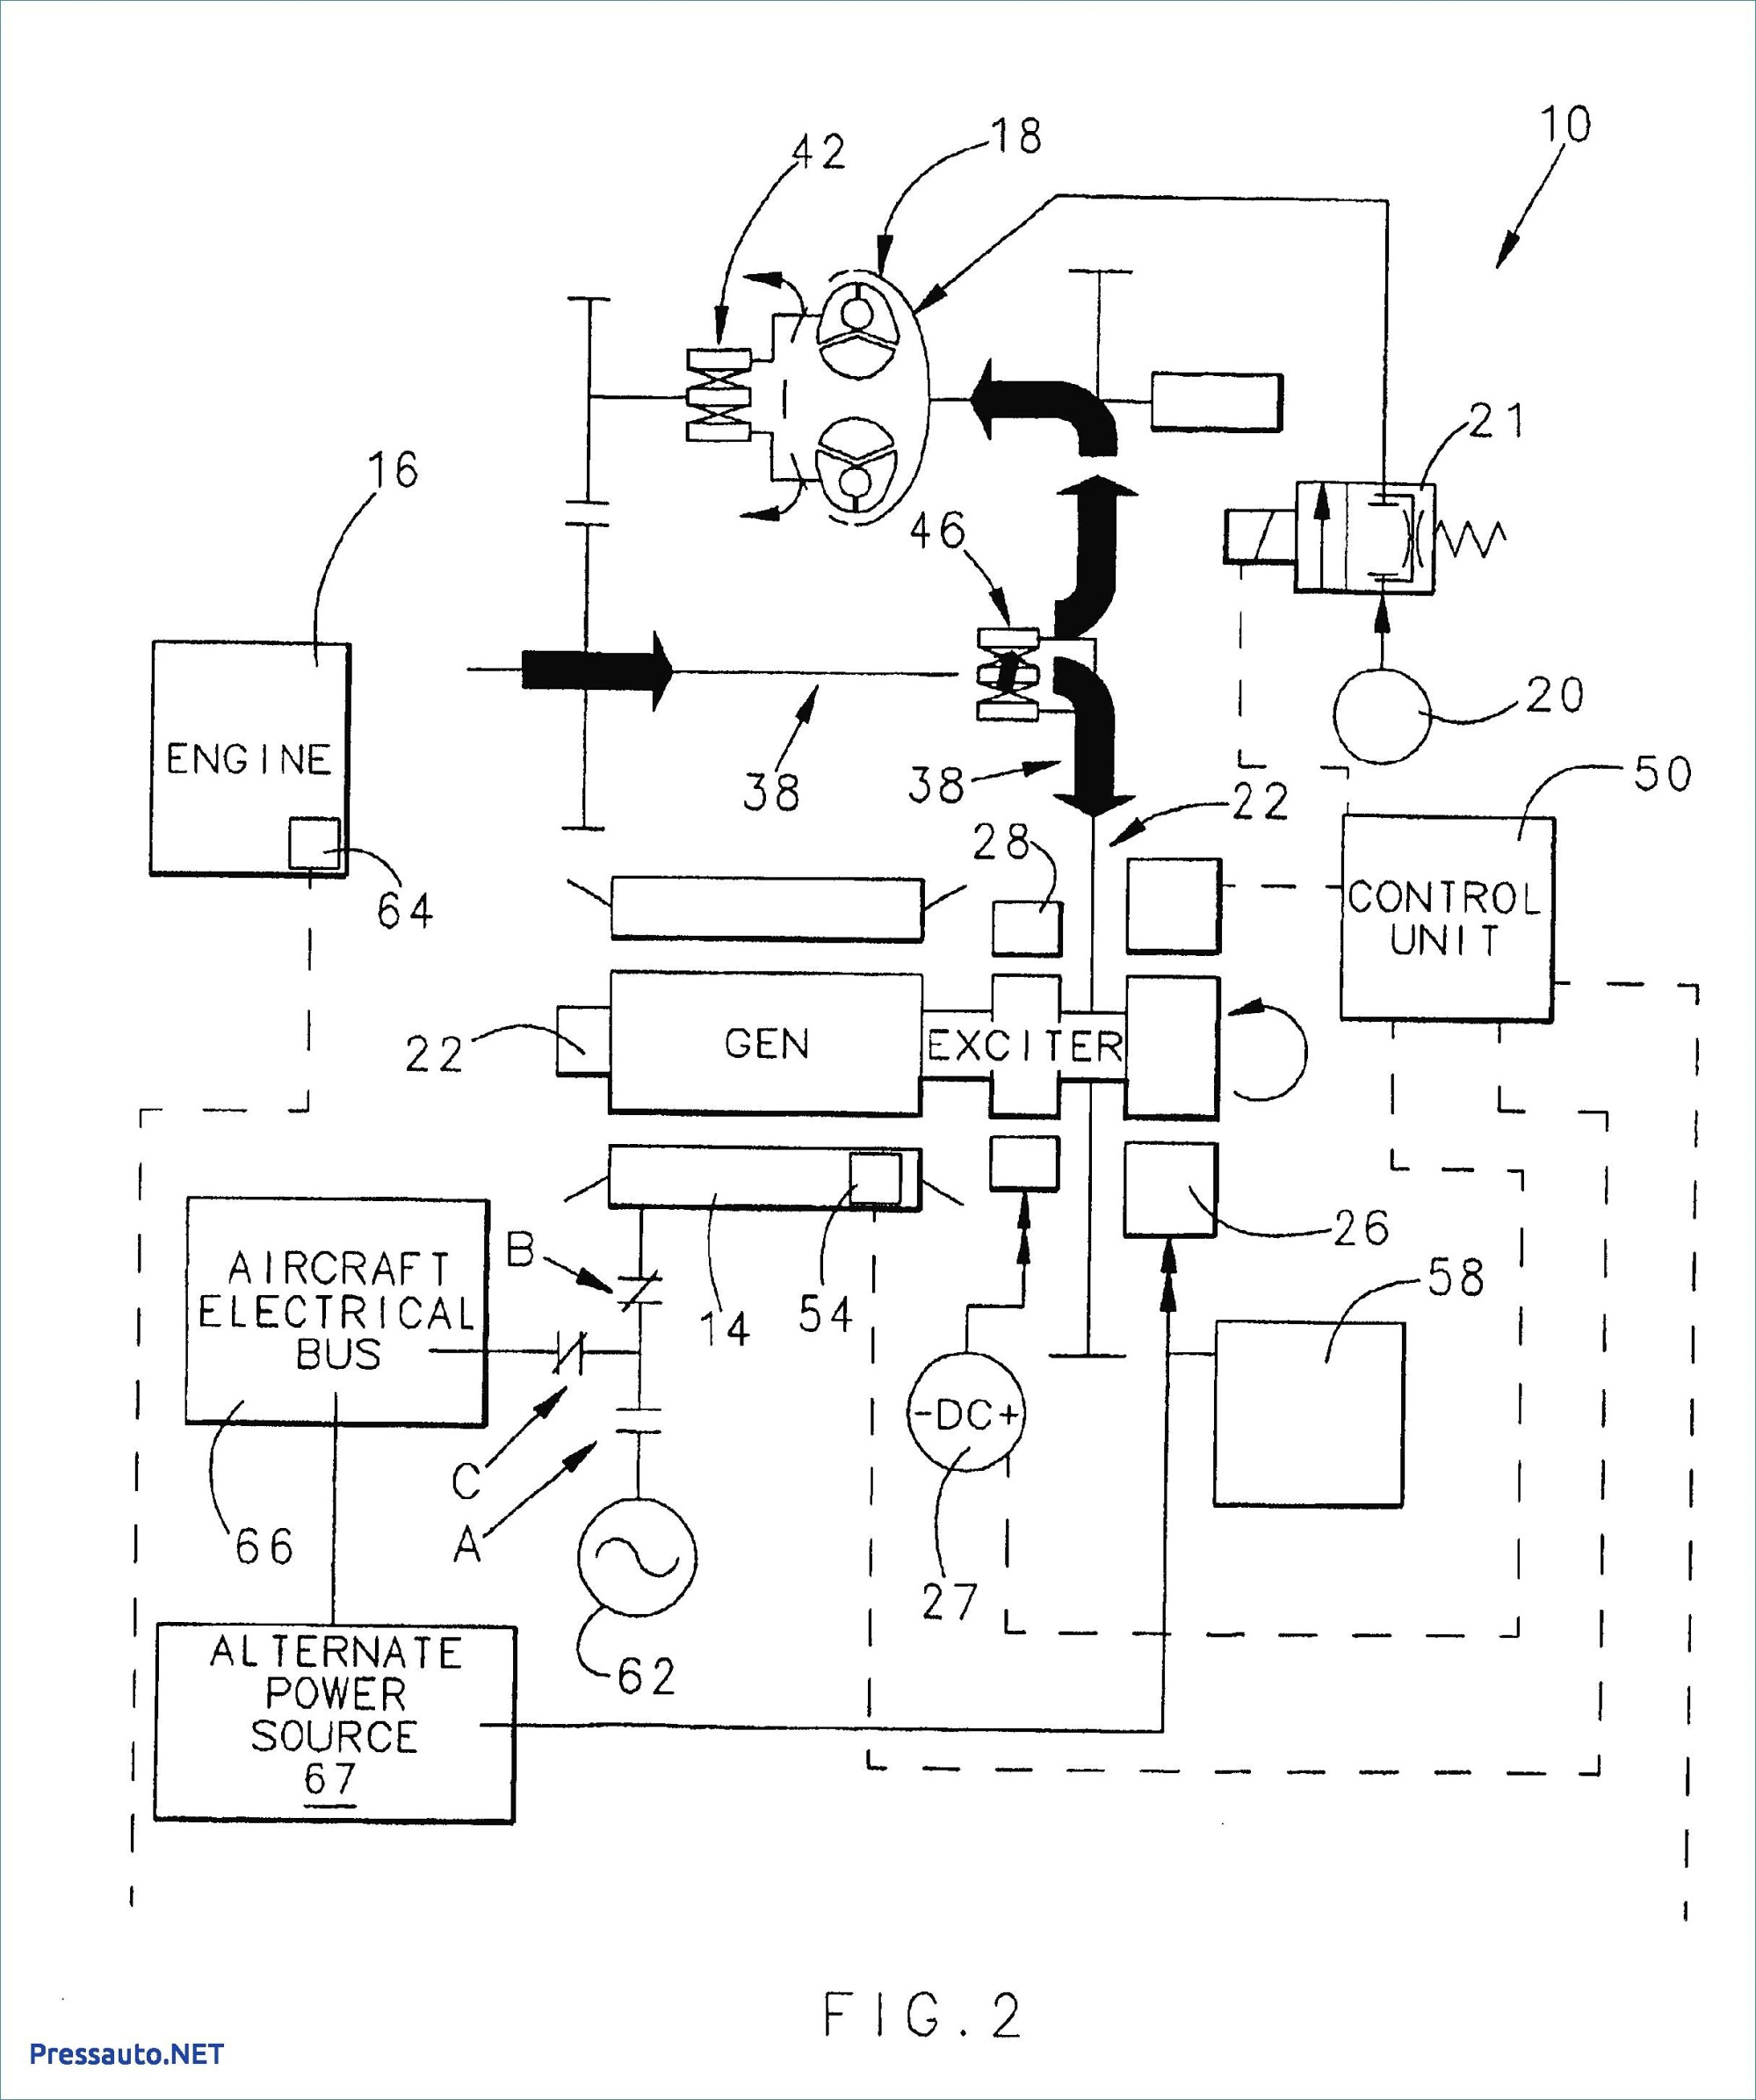 hight resolution of 4 wire range plug wiring auto diagrams instructions 3 wire outlet wiring auto diagrams instructions